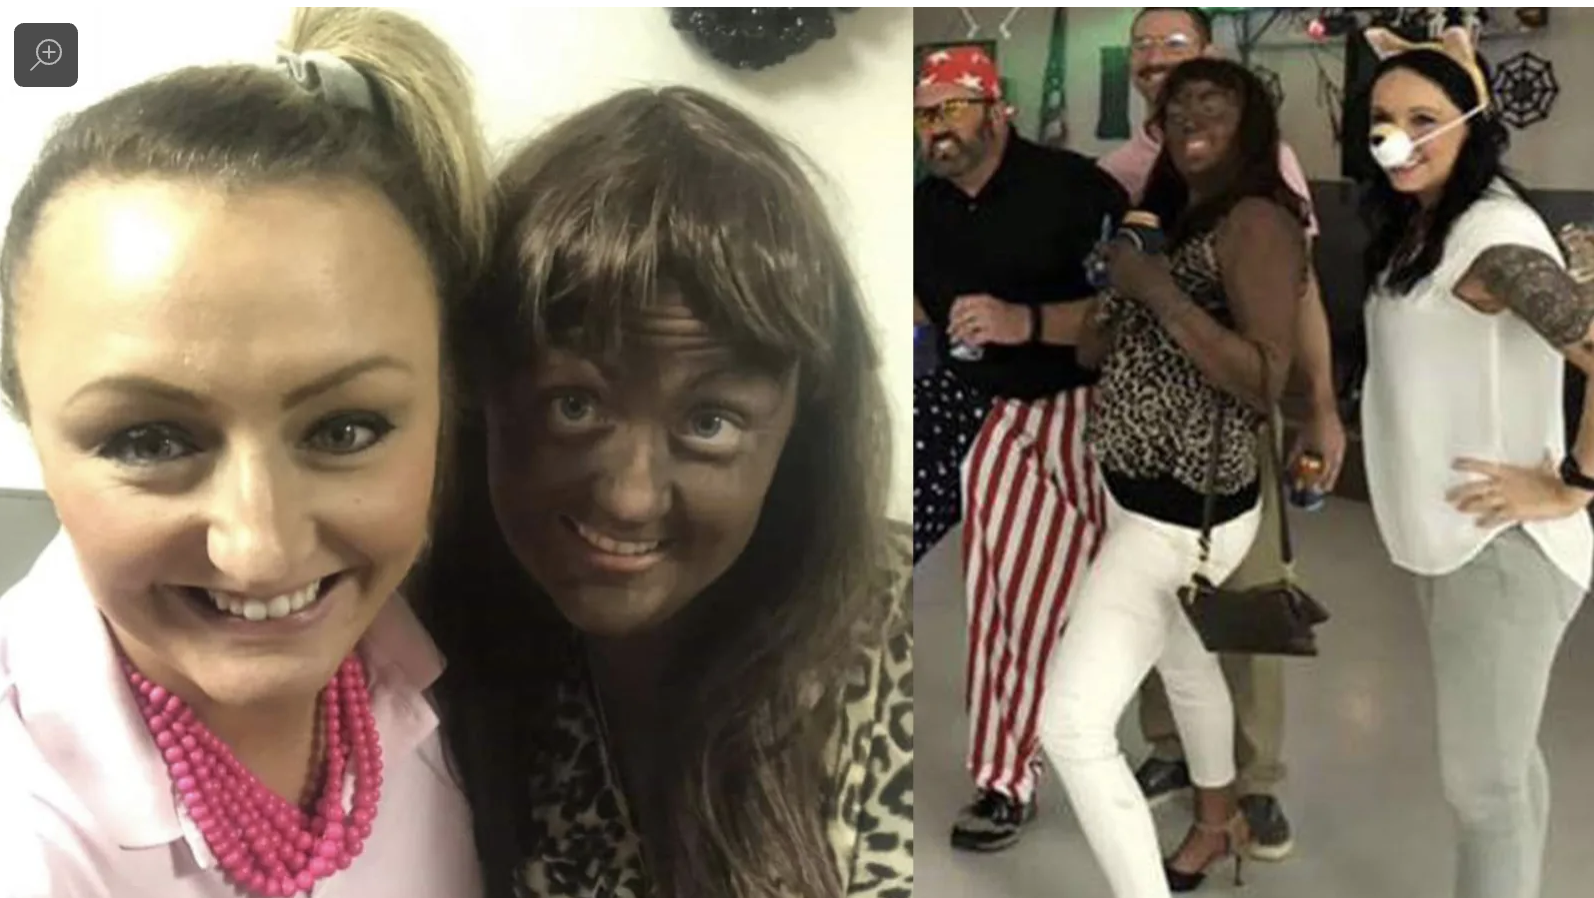 Iowa Teacher Under Investigation For Wearing Blackface to Halloween Party